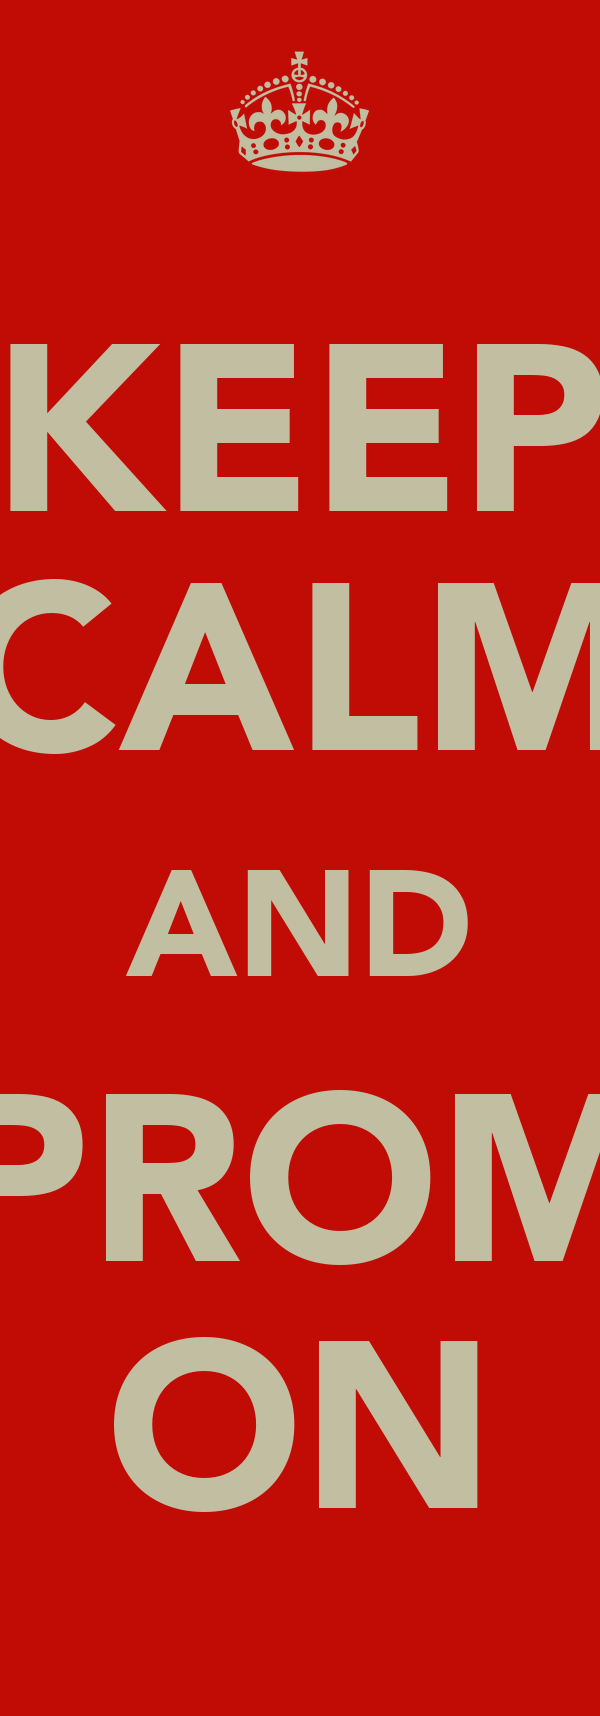 KEEP CALM AND PROM ON